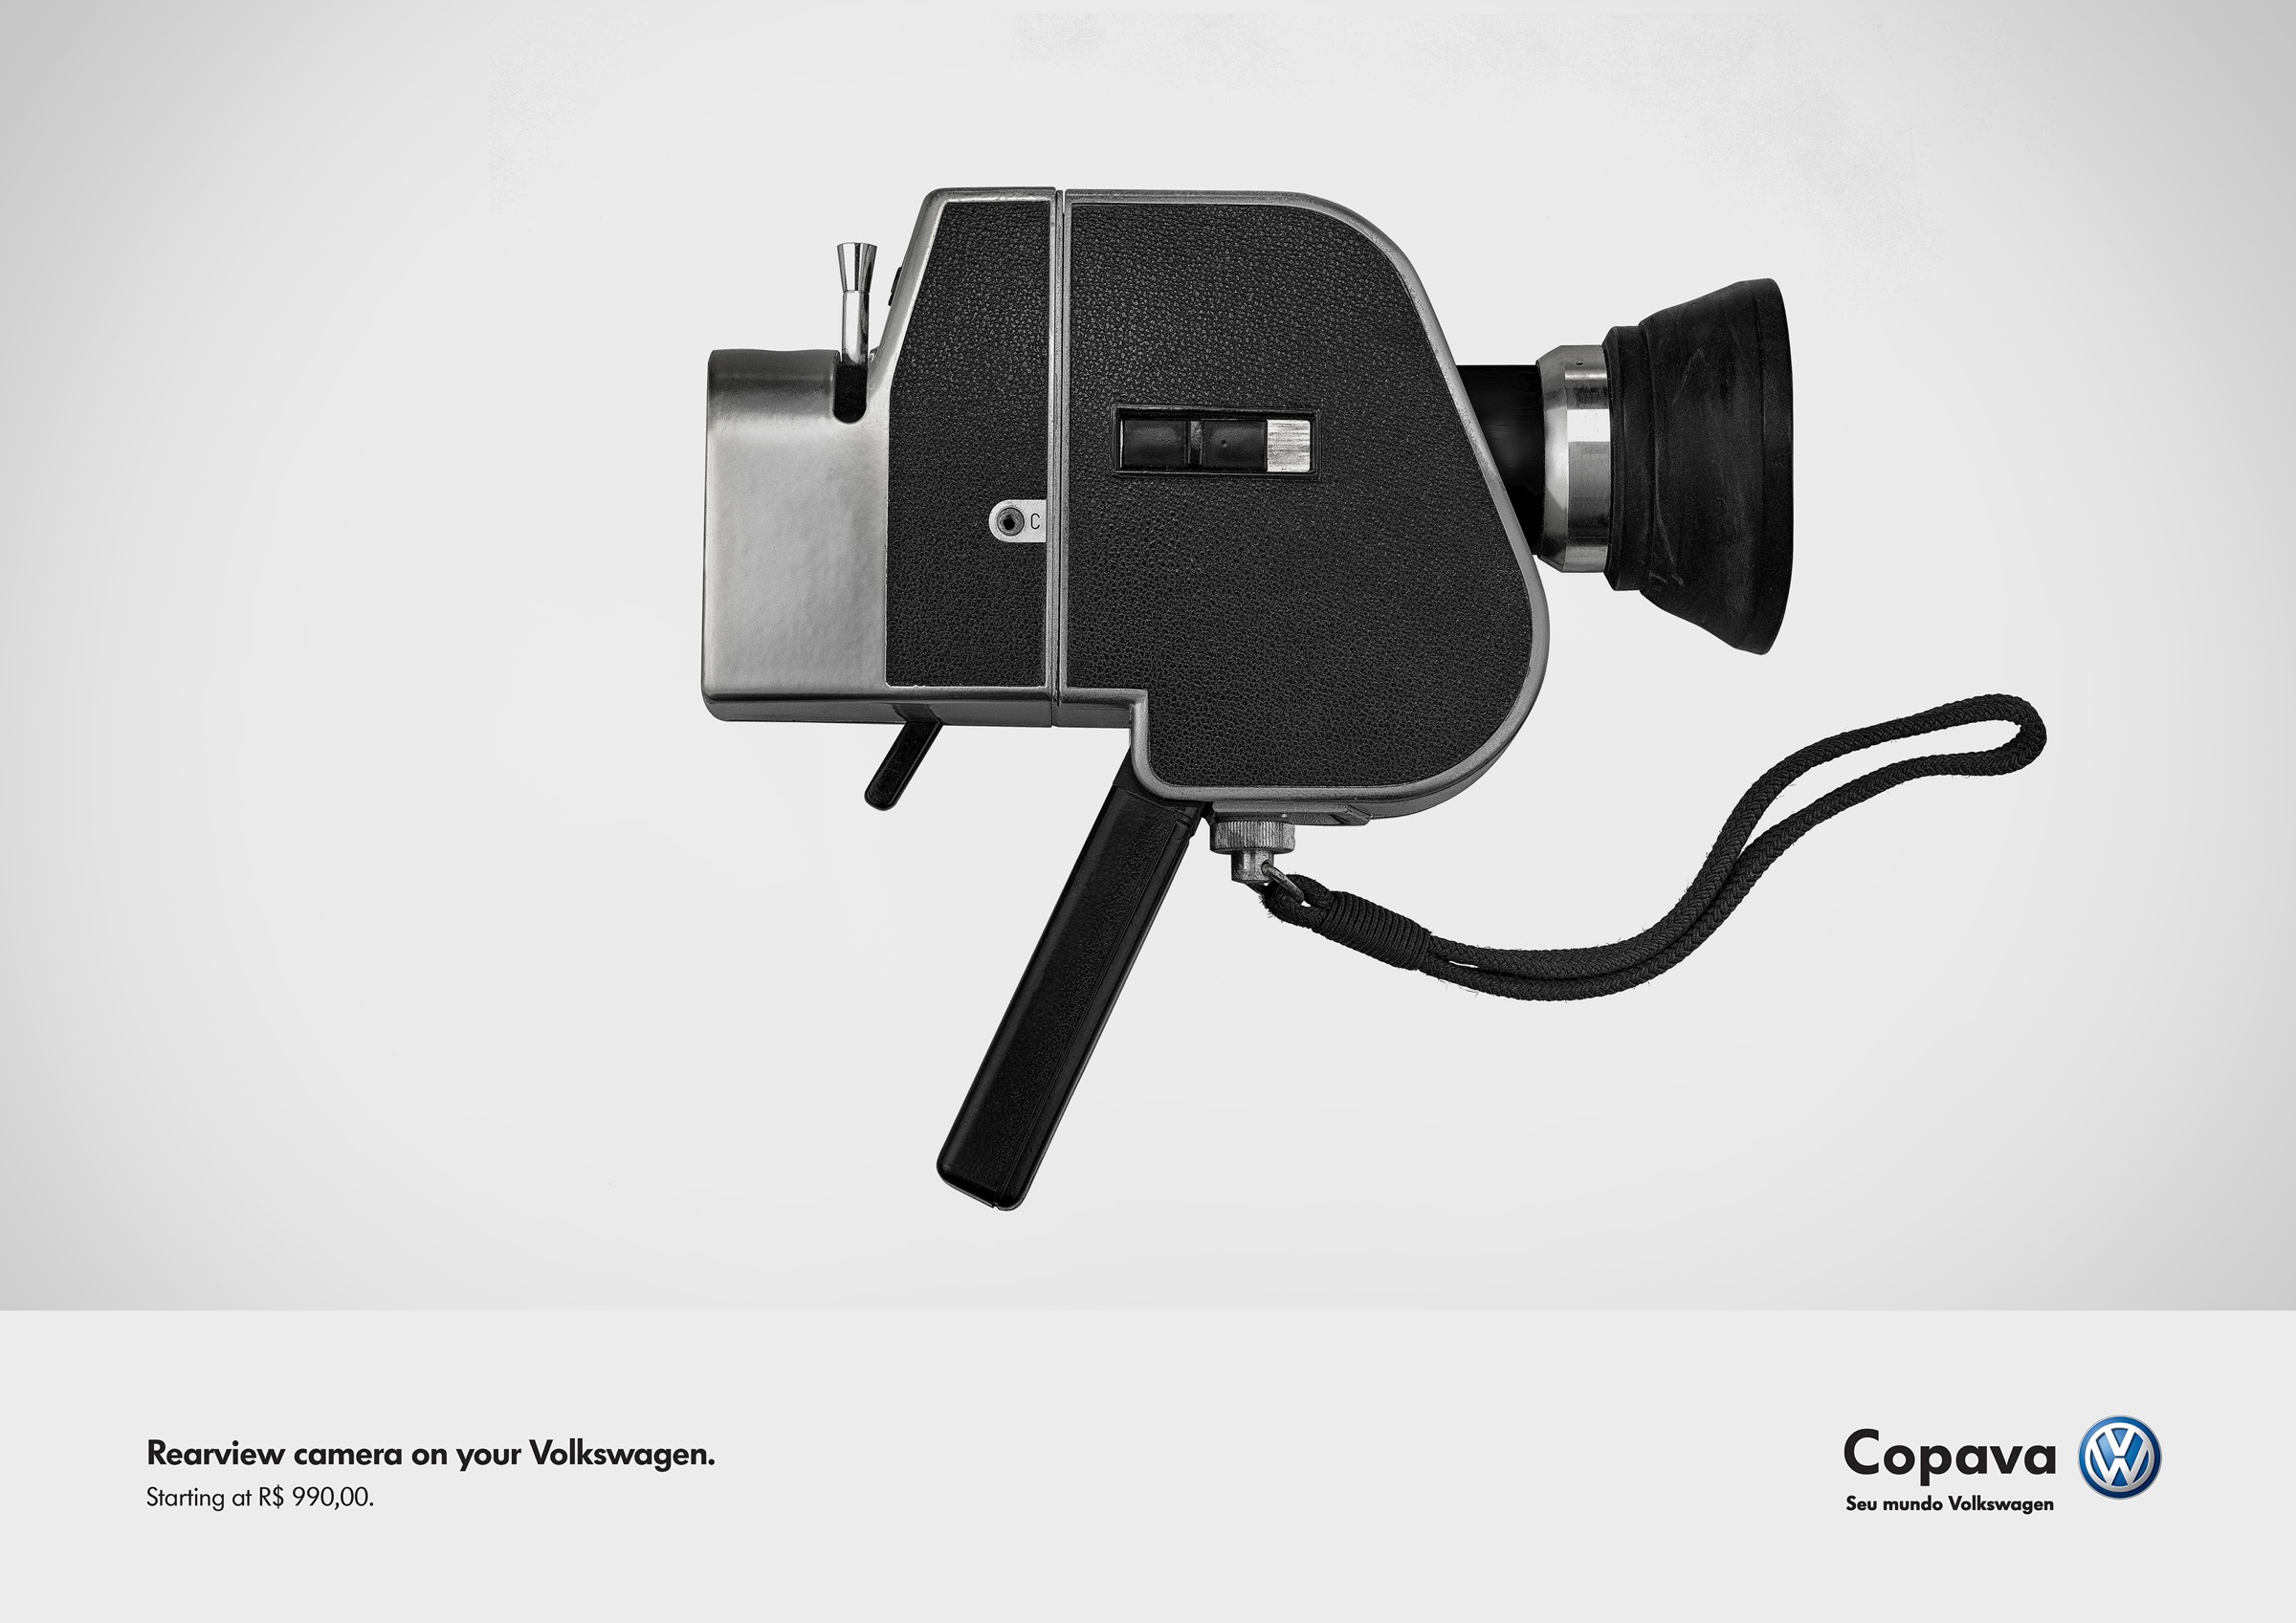 Volkswagen Print Advert By Verbal: Rearview camera | Ads of the World™